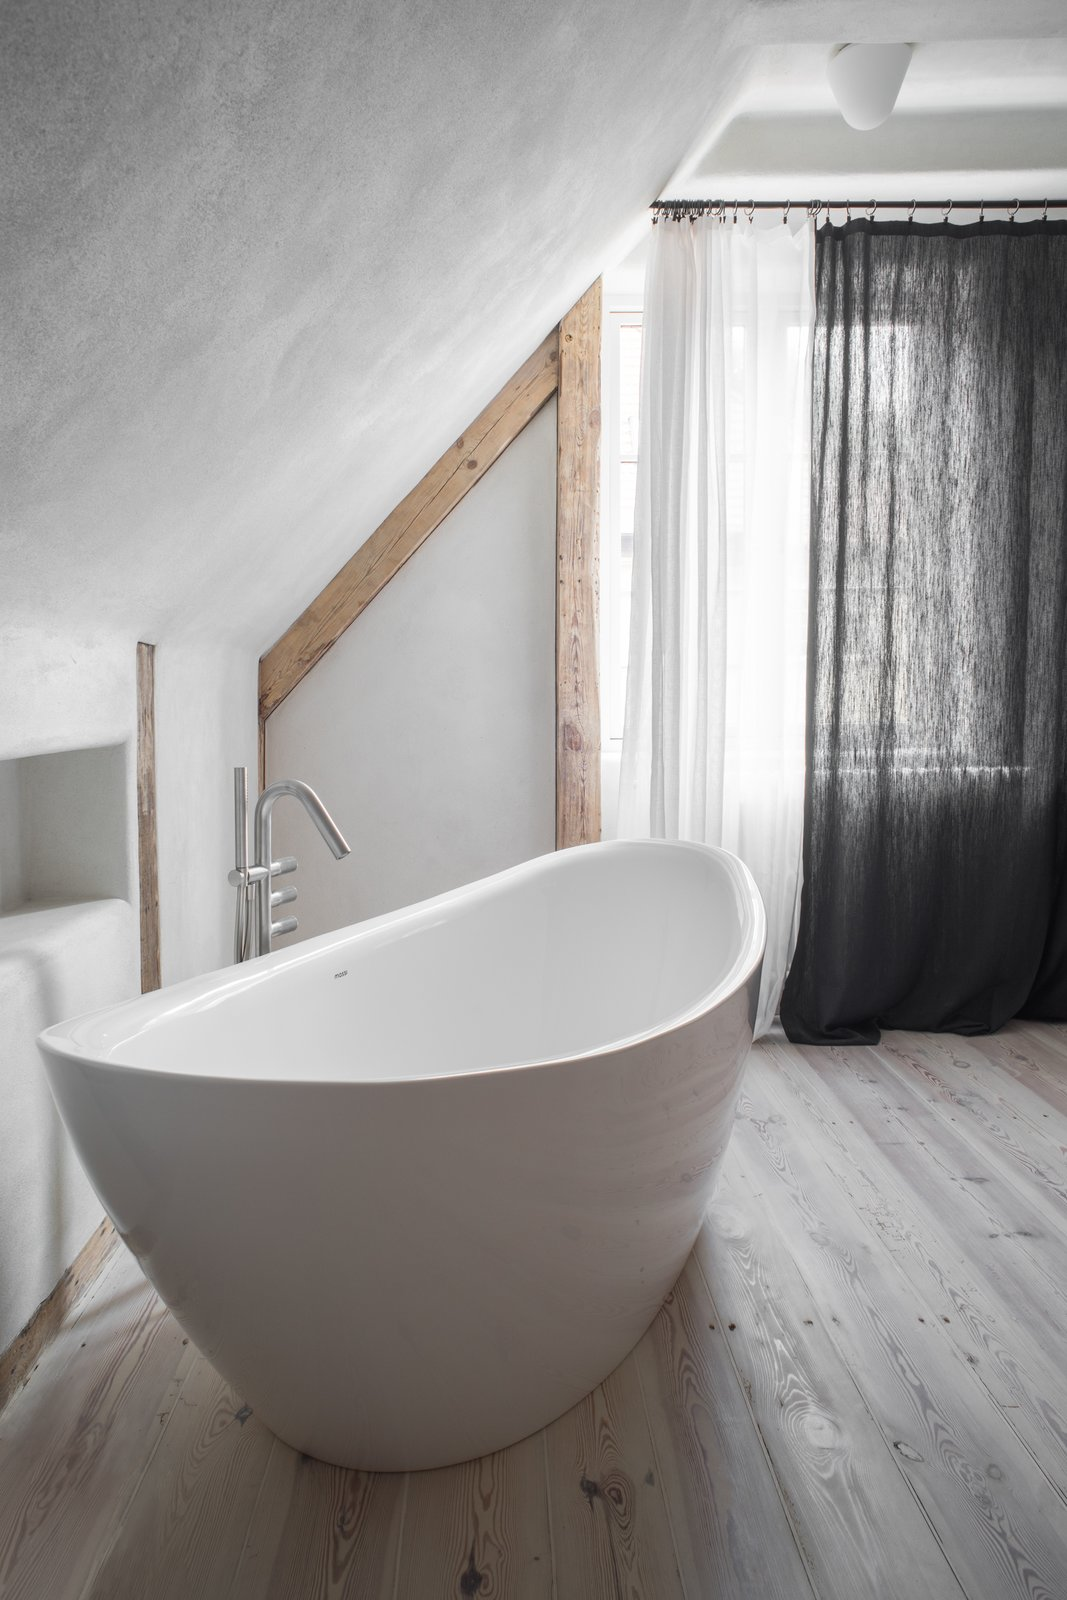 Loft Kolasiński soaking tub in bathroom